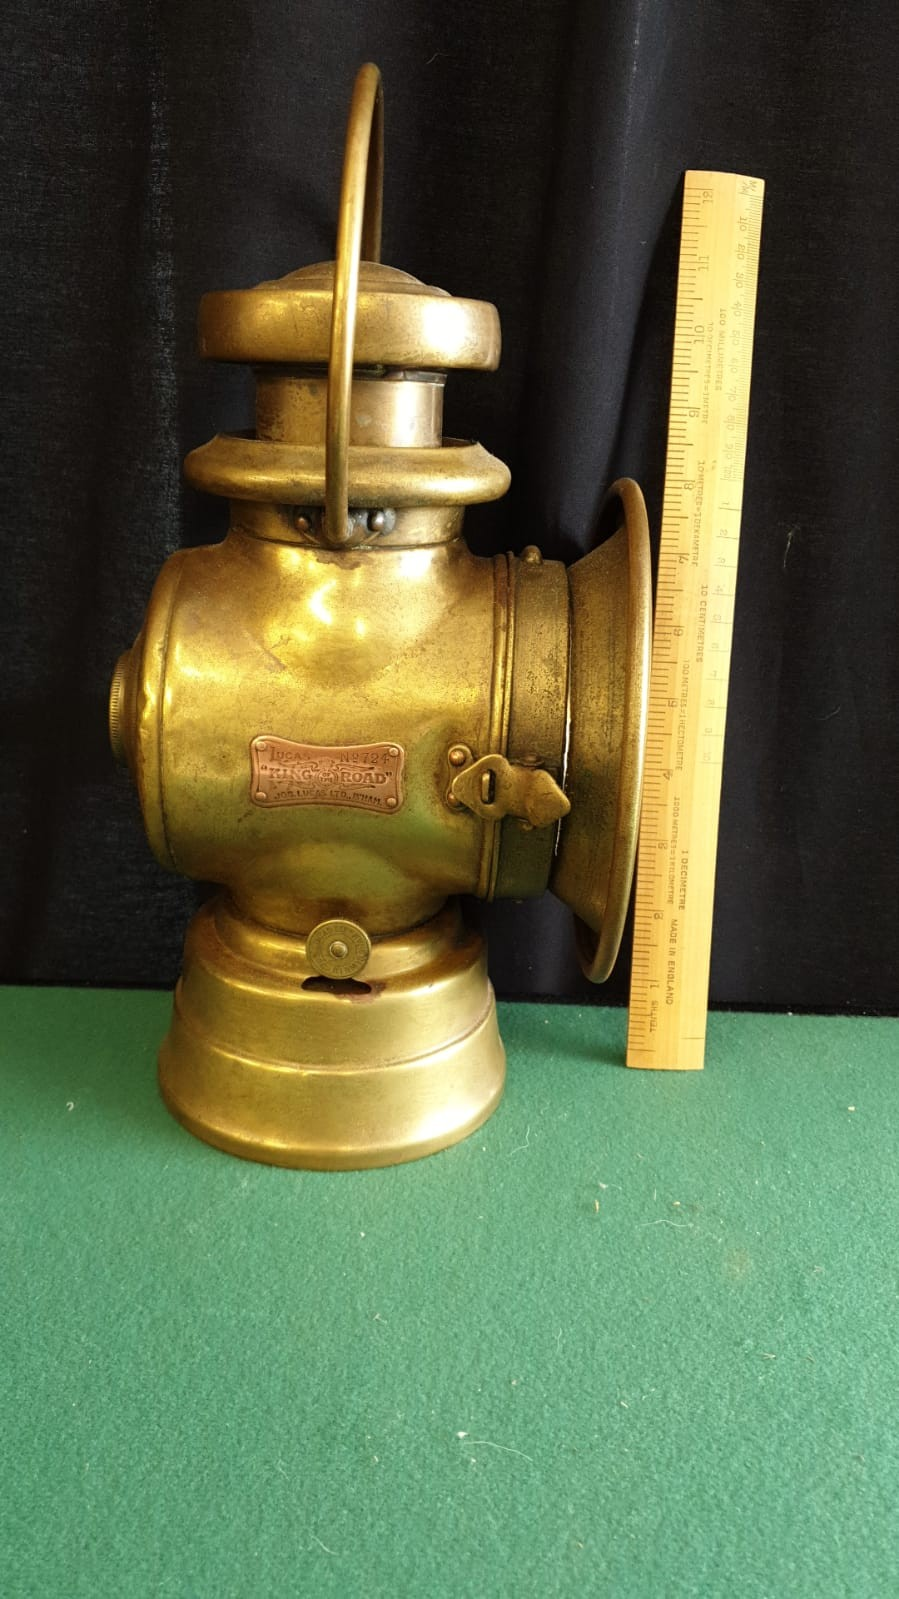 Large Lucas King Of The Road Vintage Motor Car Side Oil Lamp No 724 Height 32cms - Image 2 of 3